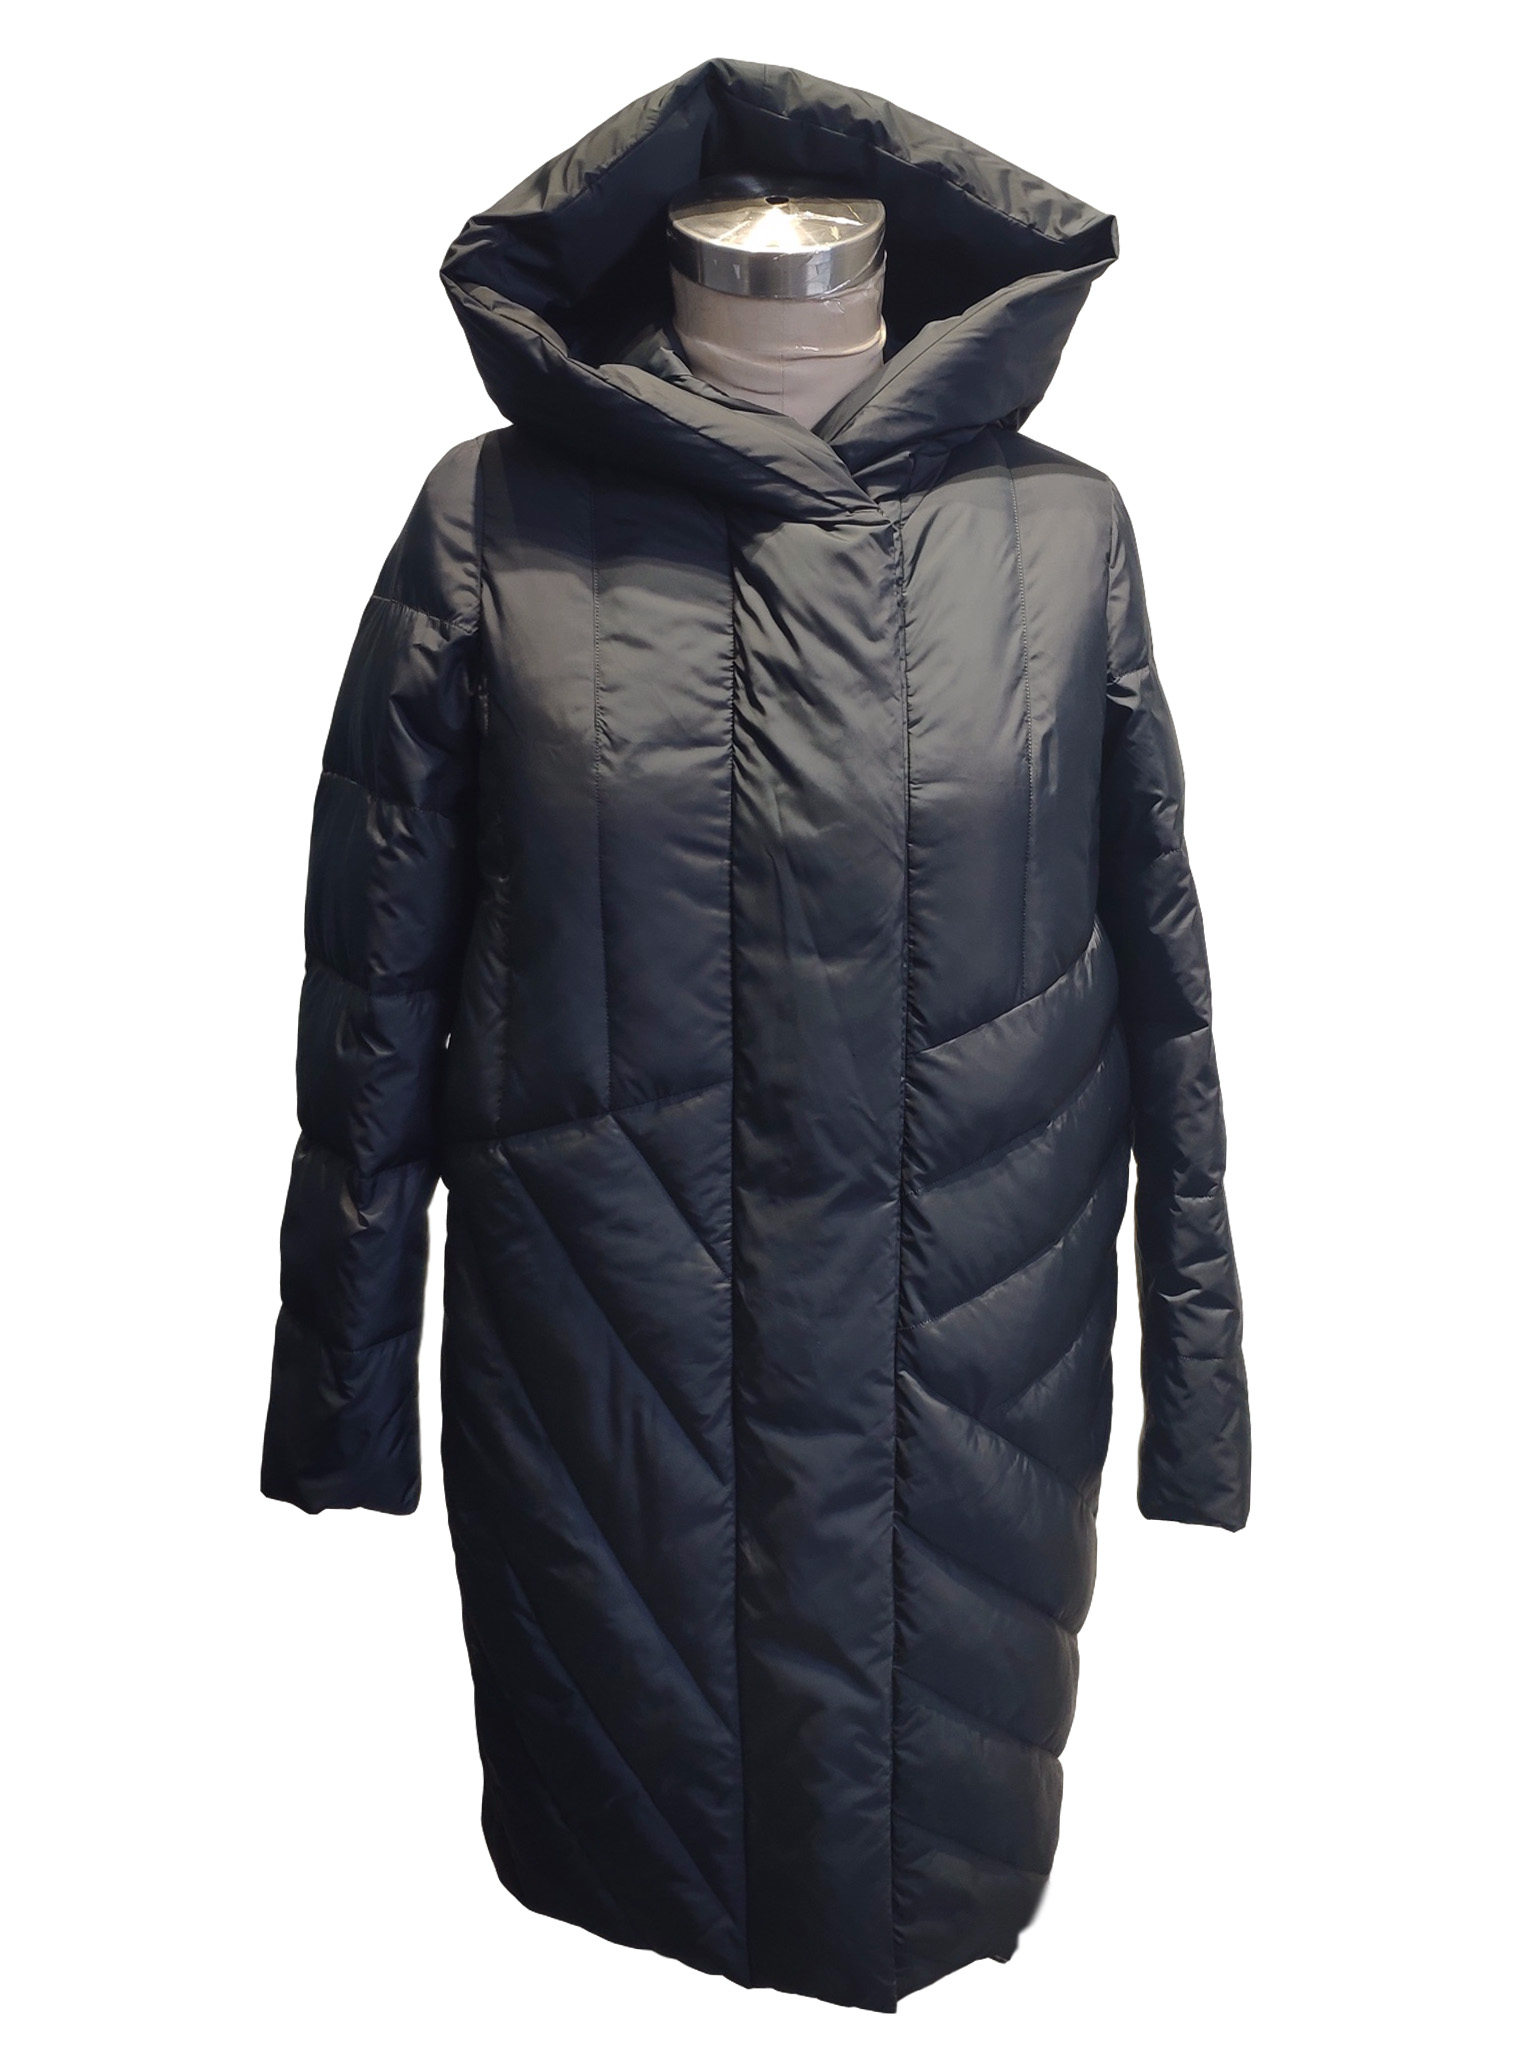 womens down jacket cost